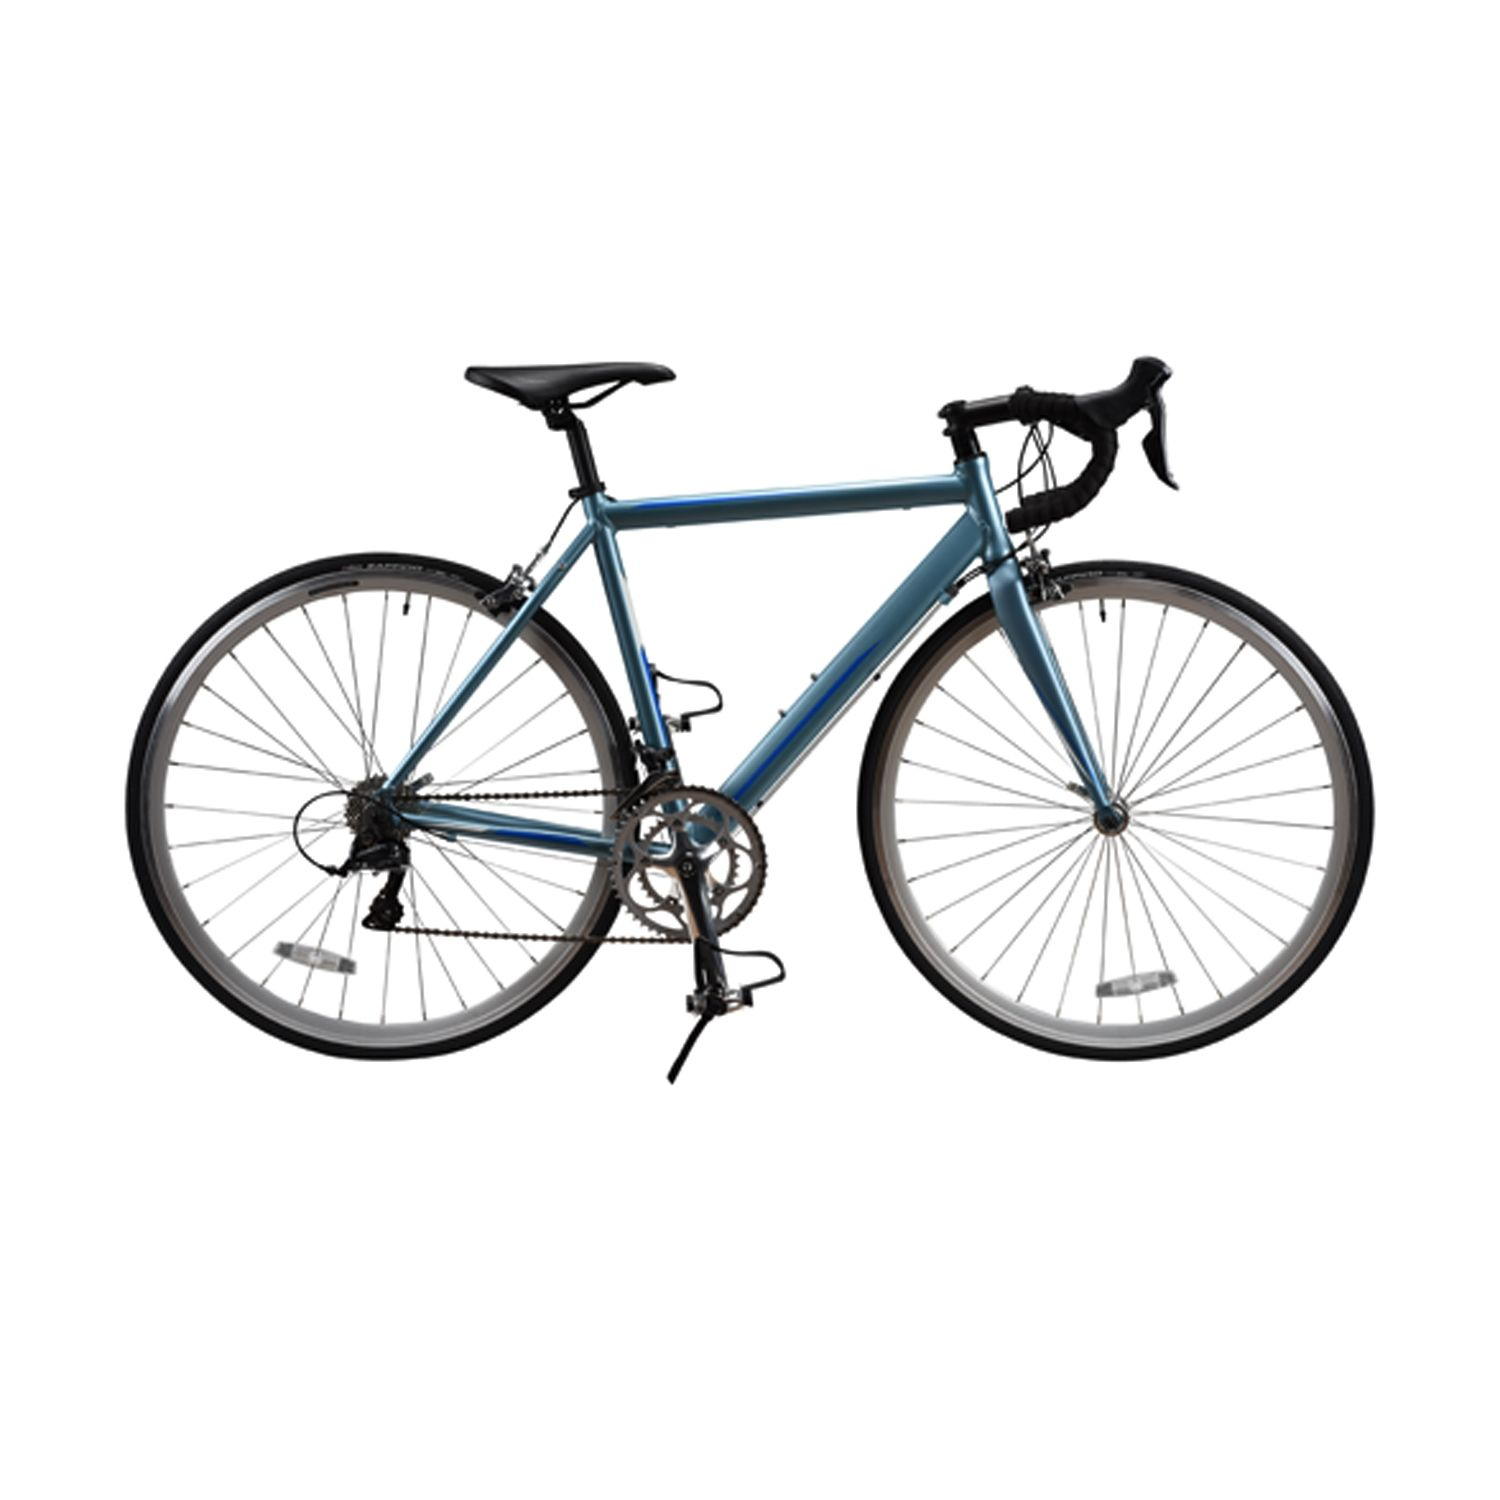 Nashbar Wr1 Women 39 S Road Bike Nashbar Road Bike Women